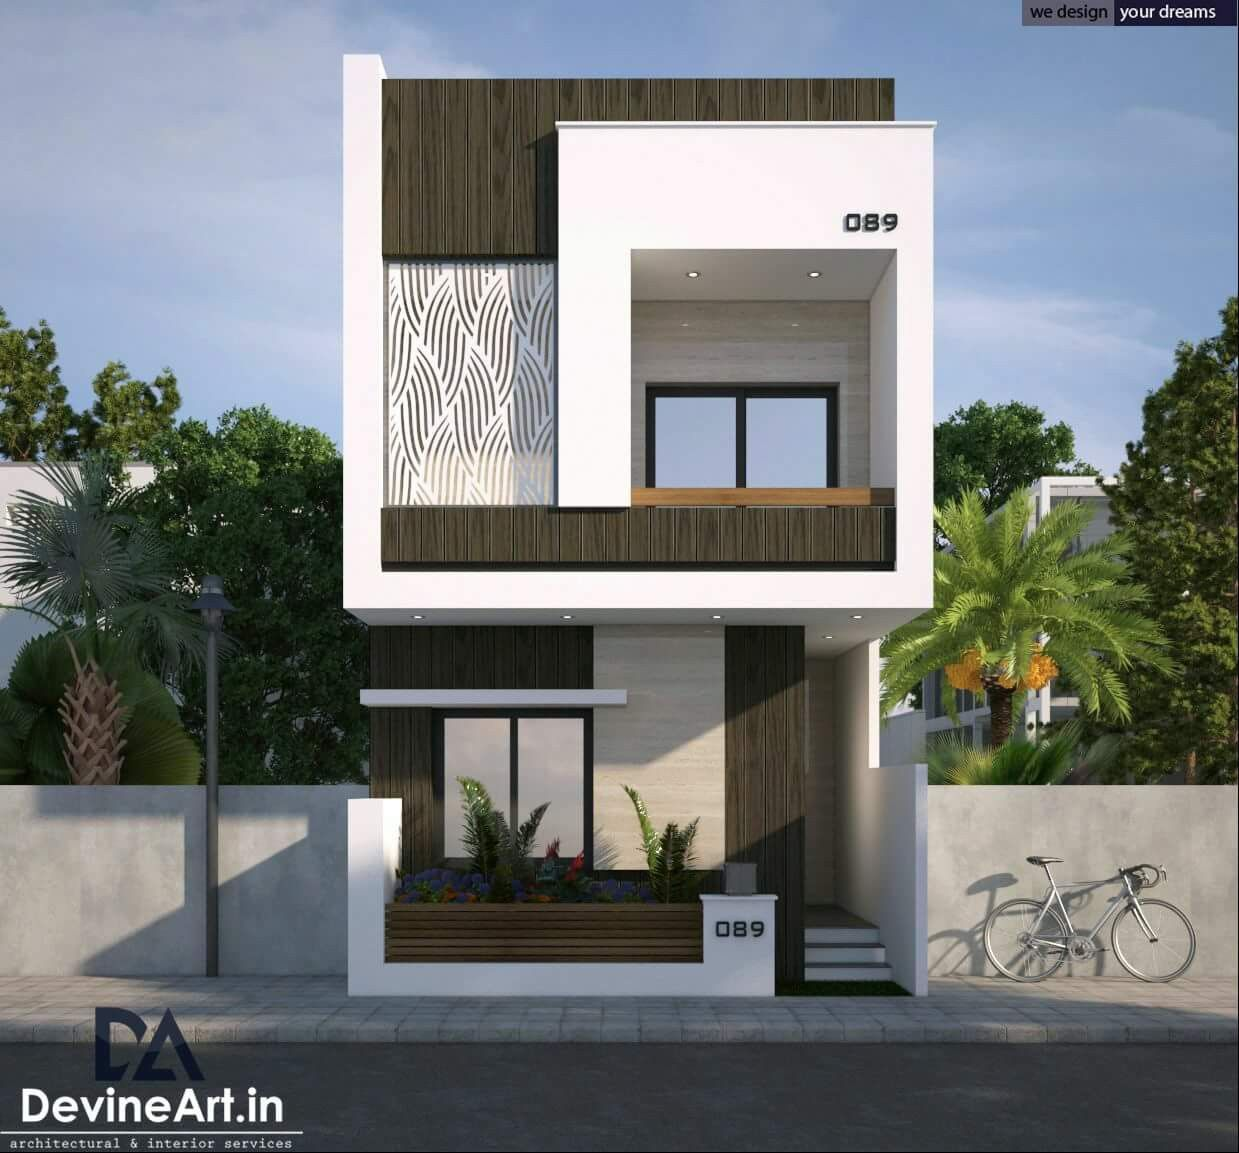 Best simple design | Duplex house design, Architectural ... on indian house designs, kerala house designs, small house designs, pampanga philippines house designs, latest building designs, long house designs, modern house plans and designs, two-story house designs, basic house designs, contemporary house plans and designs, amazing house designs, new home designs,